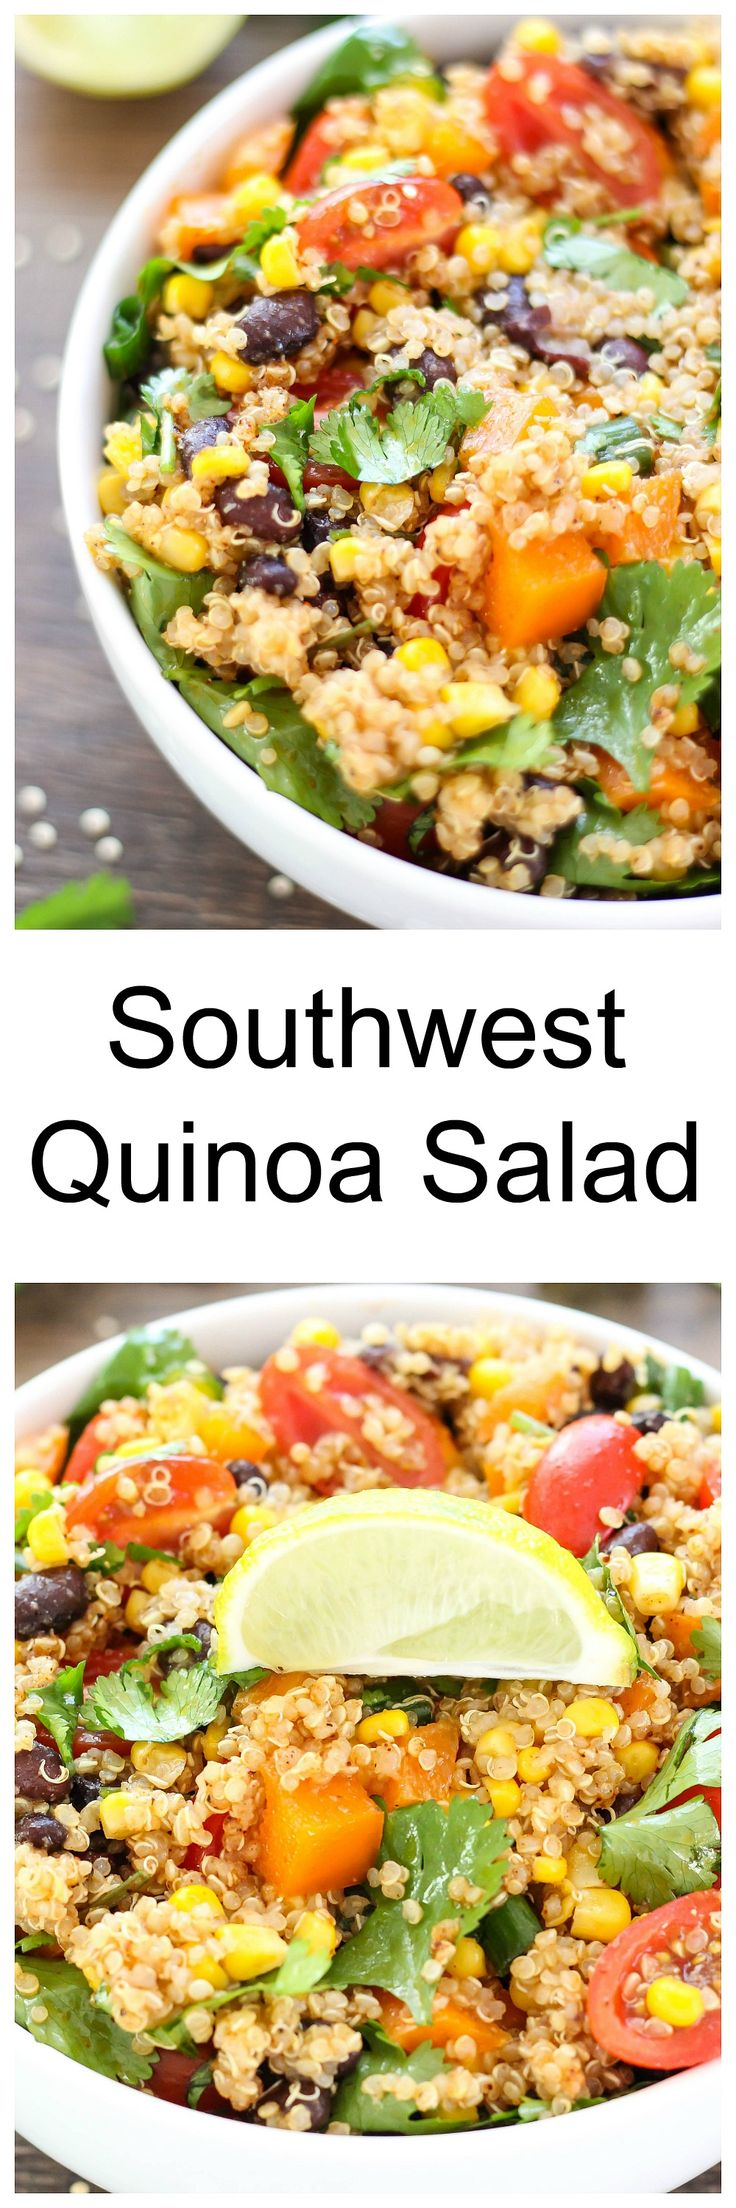 Southwest Quinoa Salad - delicious as a flavorful side dish or hearty main meal.  Made with delicious Southwest seasonings, this chilled salad is amazing!